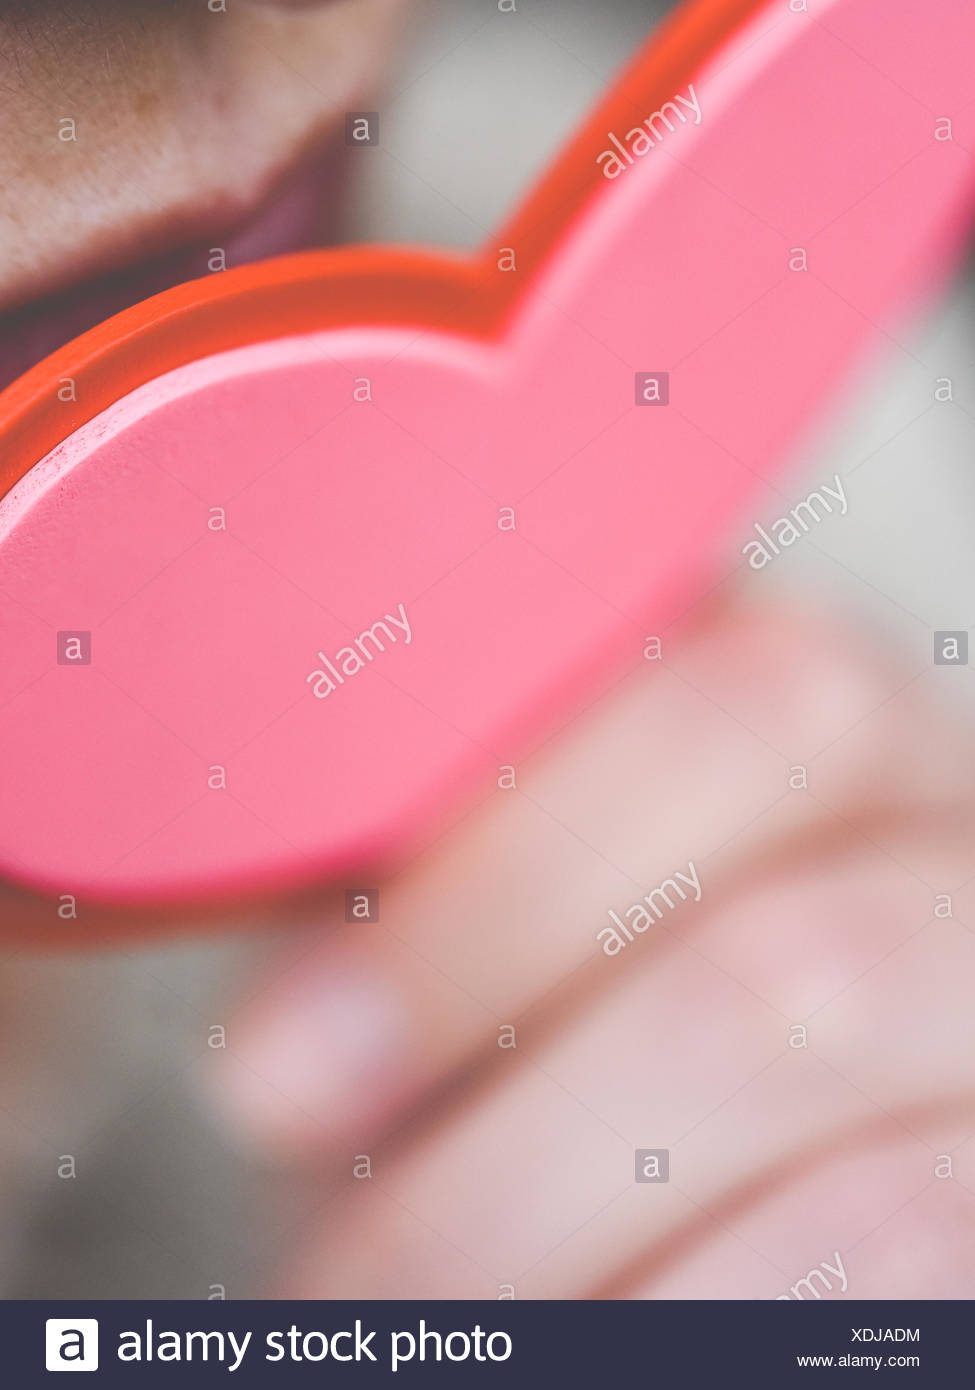 Woman holding a paper heart close to her mouth - Stock Image